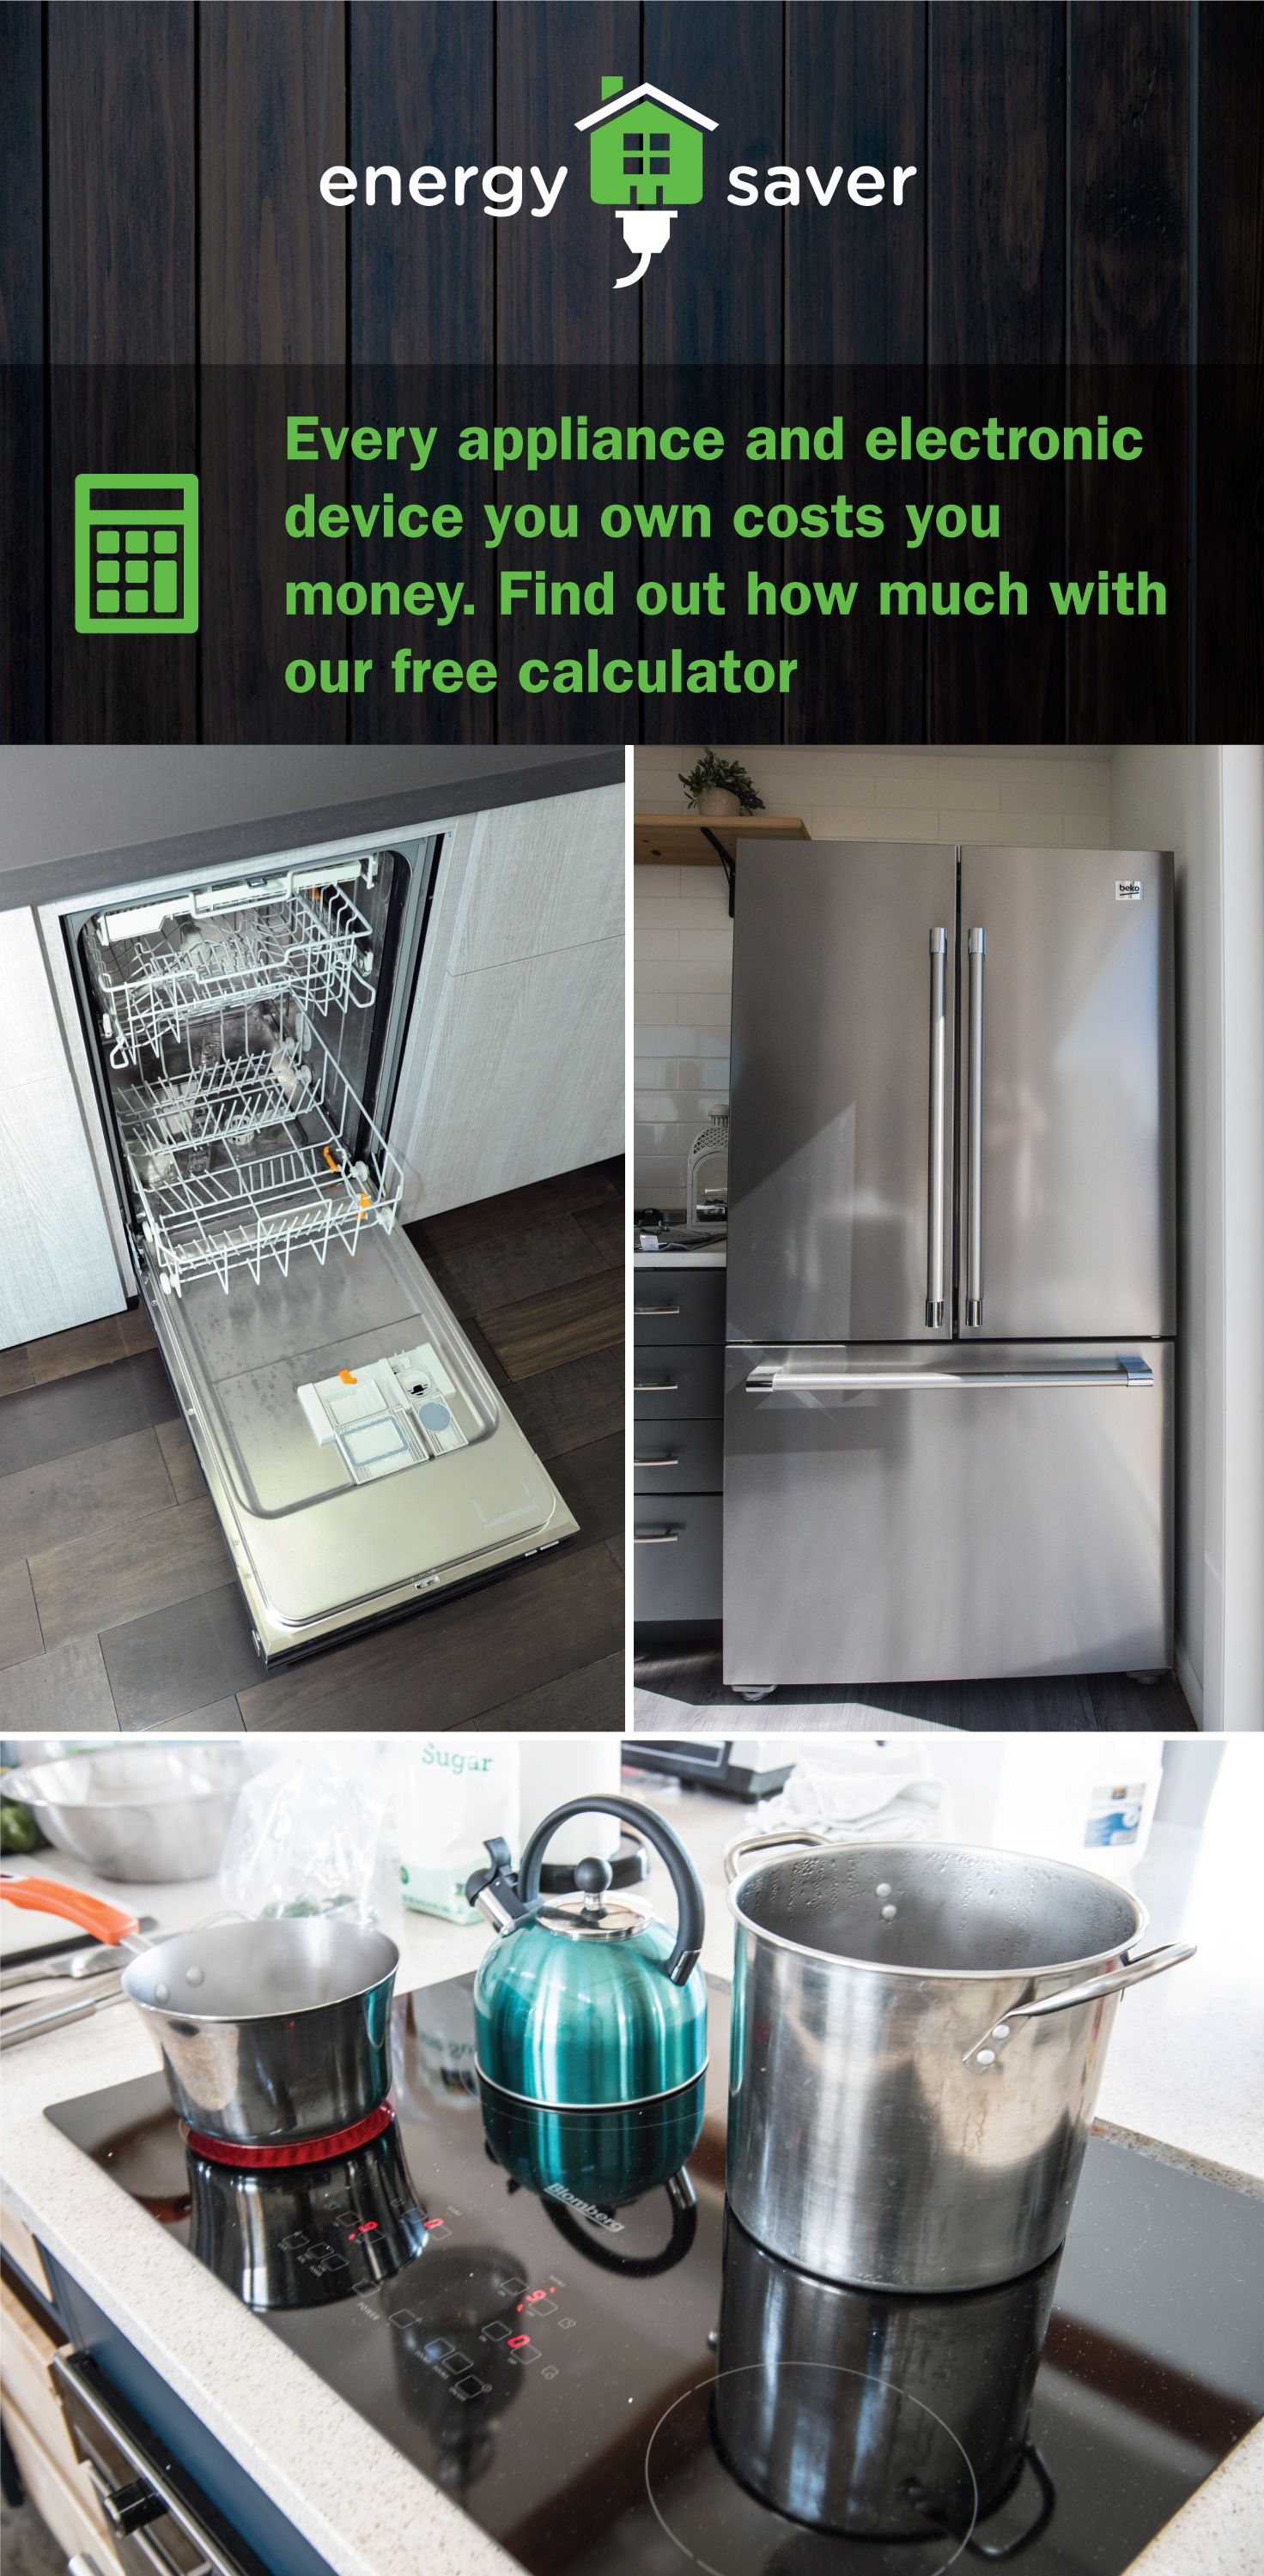 Your Appliances And Electronics Use Energy And Cost You Money Use Our Free Energy Use Calculator To Find Out How Much Energy Energy Use Energy Saver Energy